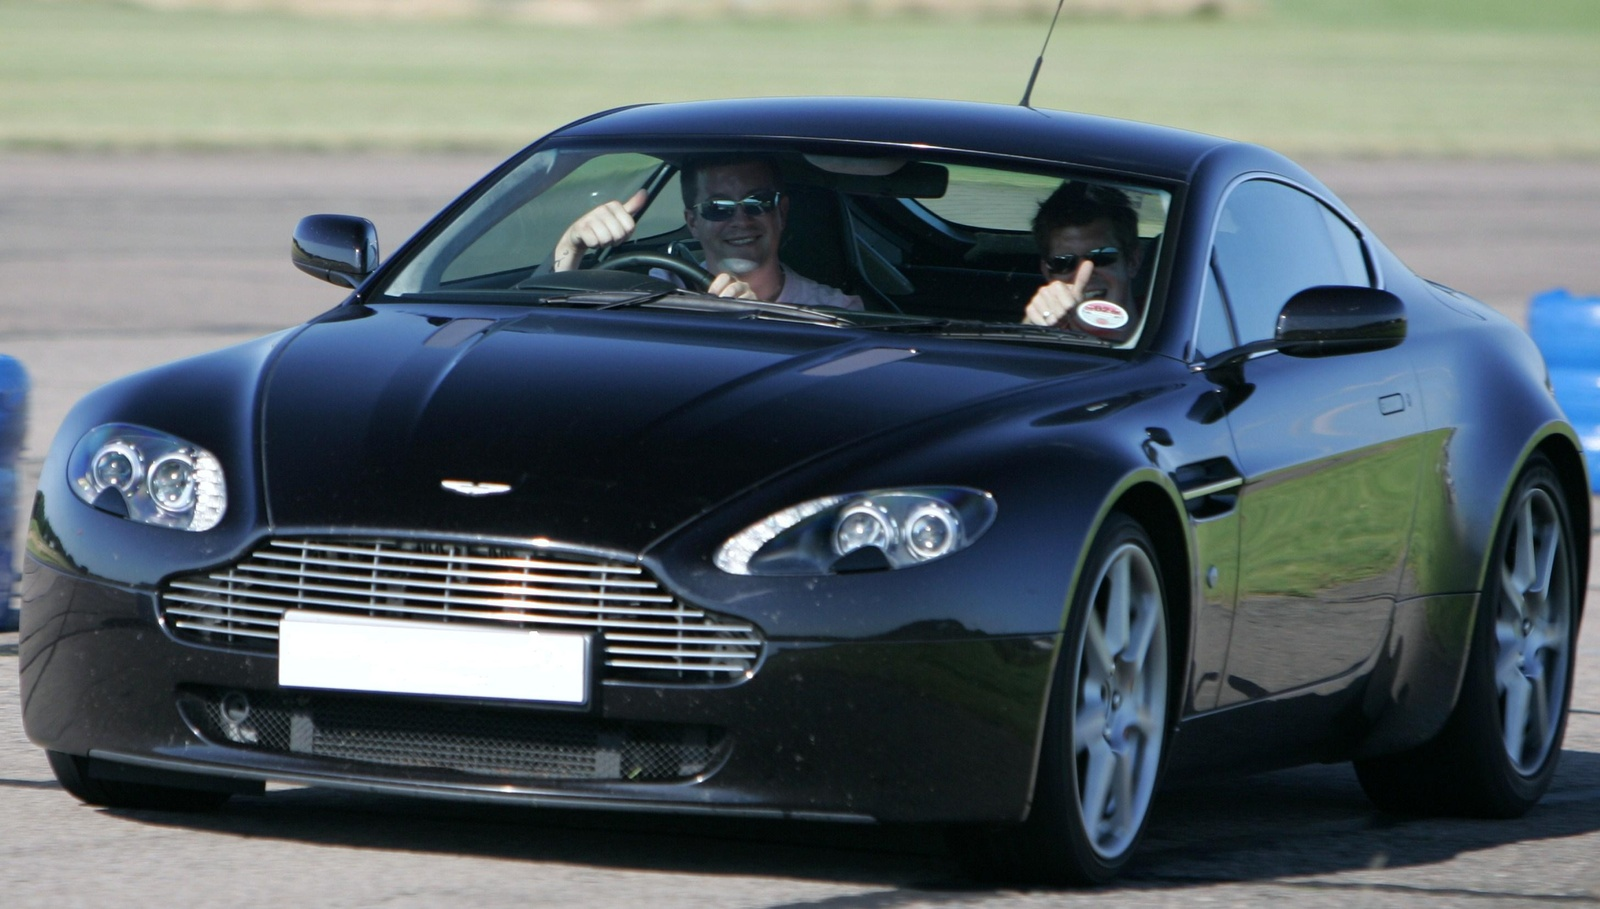 2007 aston martin v8 vantage 2007 aston martin db9 coupe picture. Cars Review. Best American Auto & Cars Review